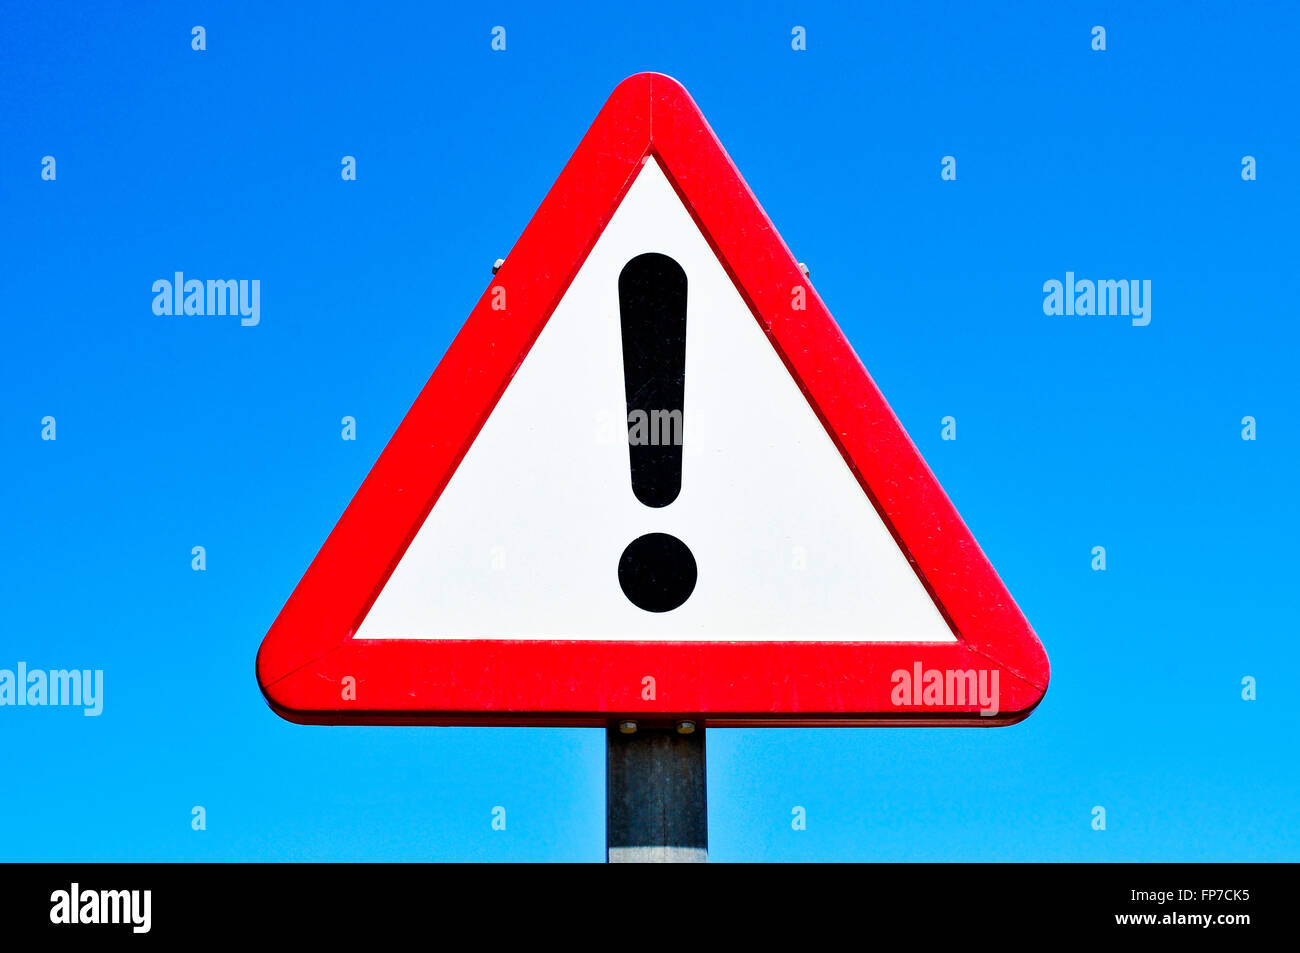 a triangular traffic sign with an exclamation mark against the blue sky - Stock Image